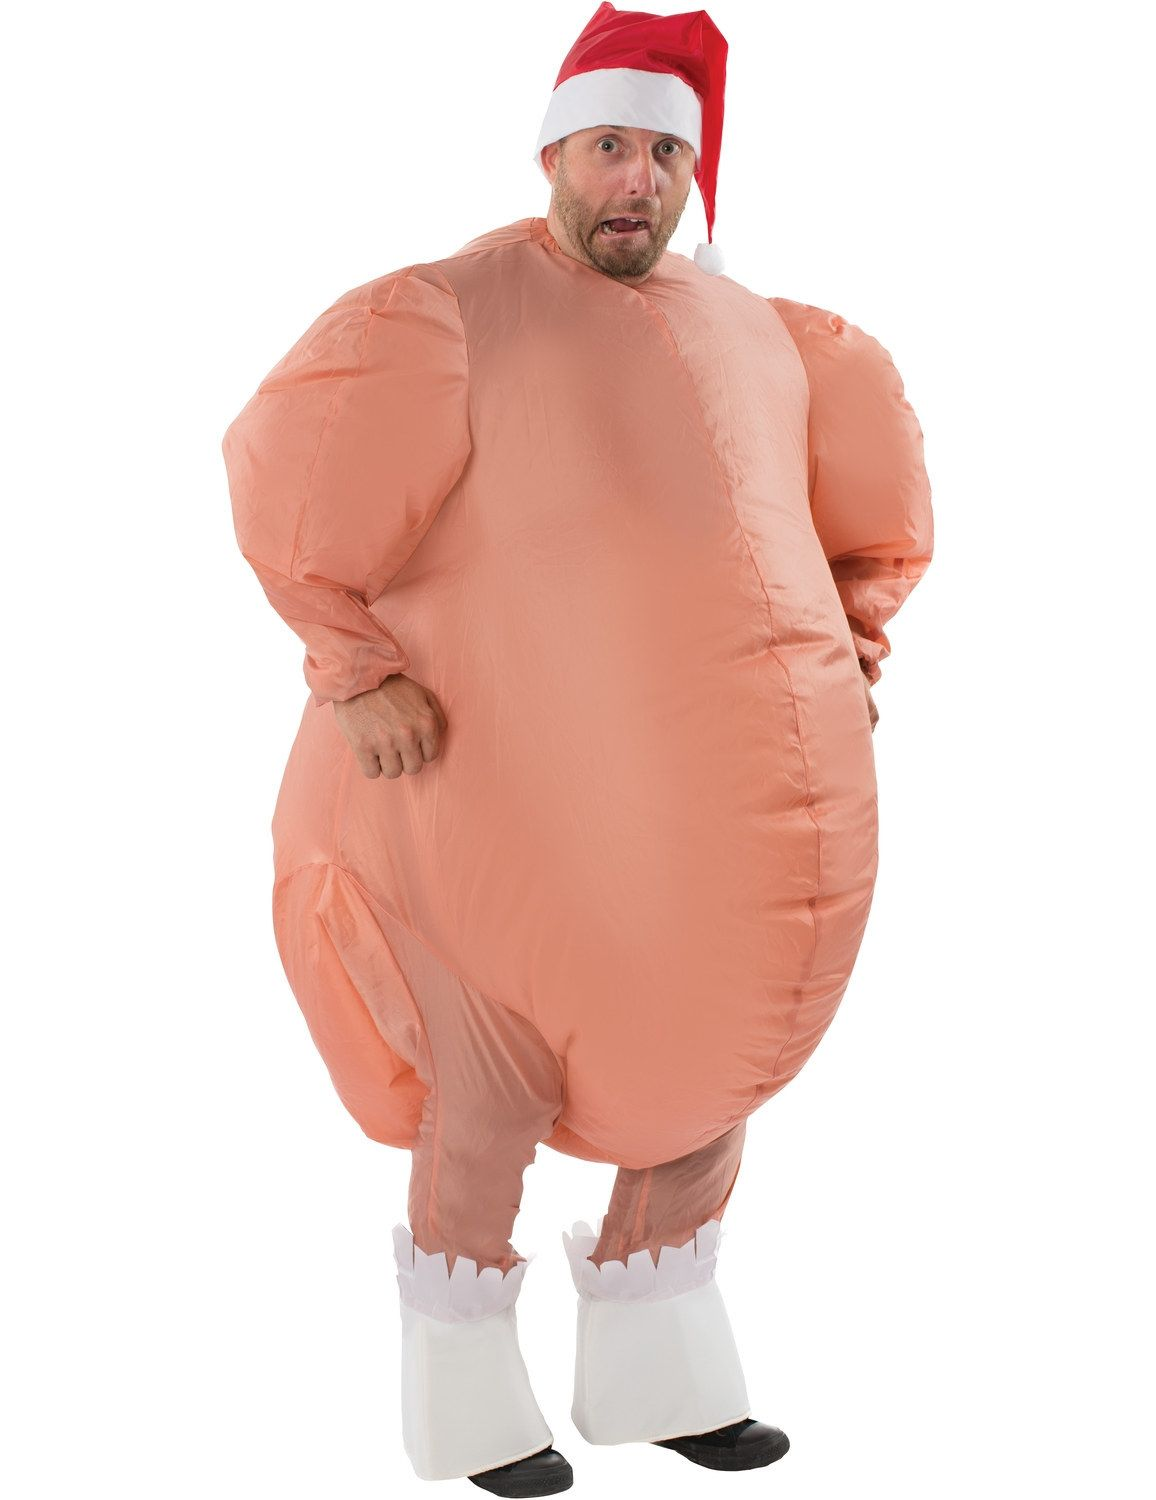 costumes christmas Adult inflatable